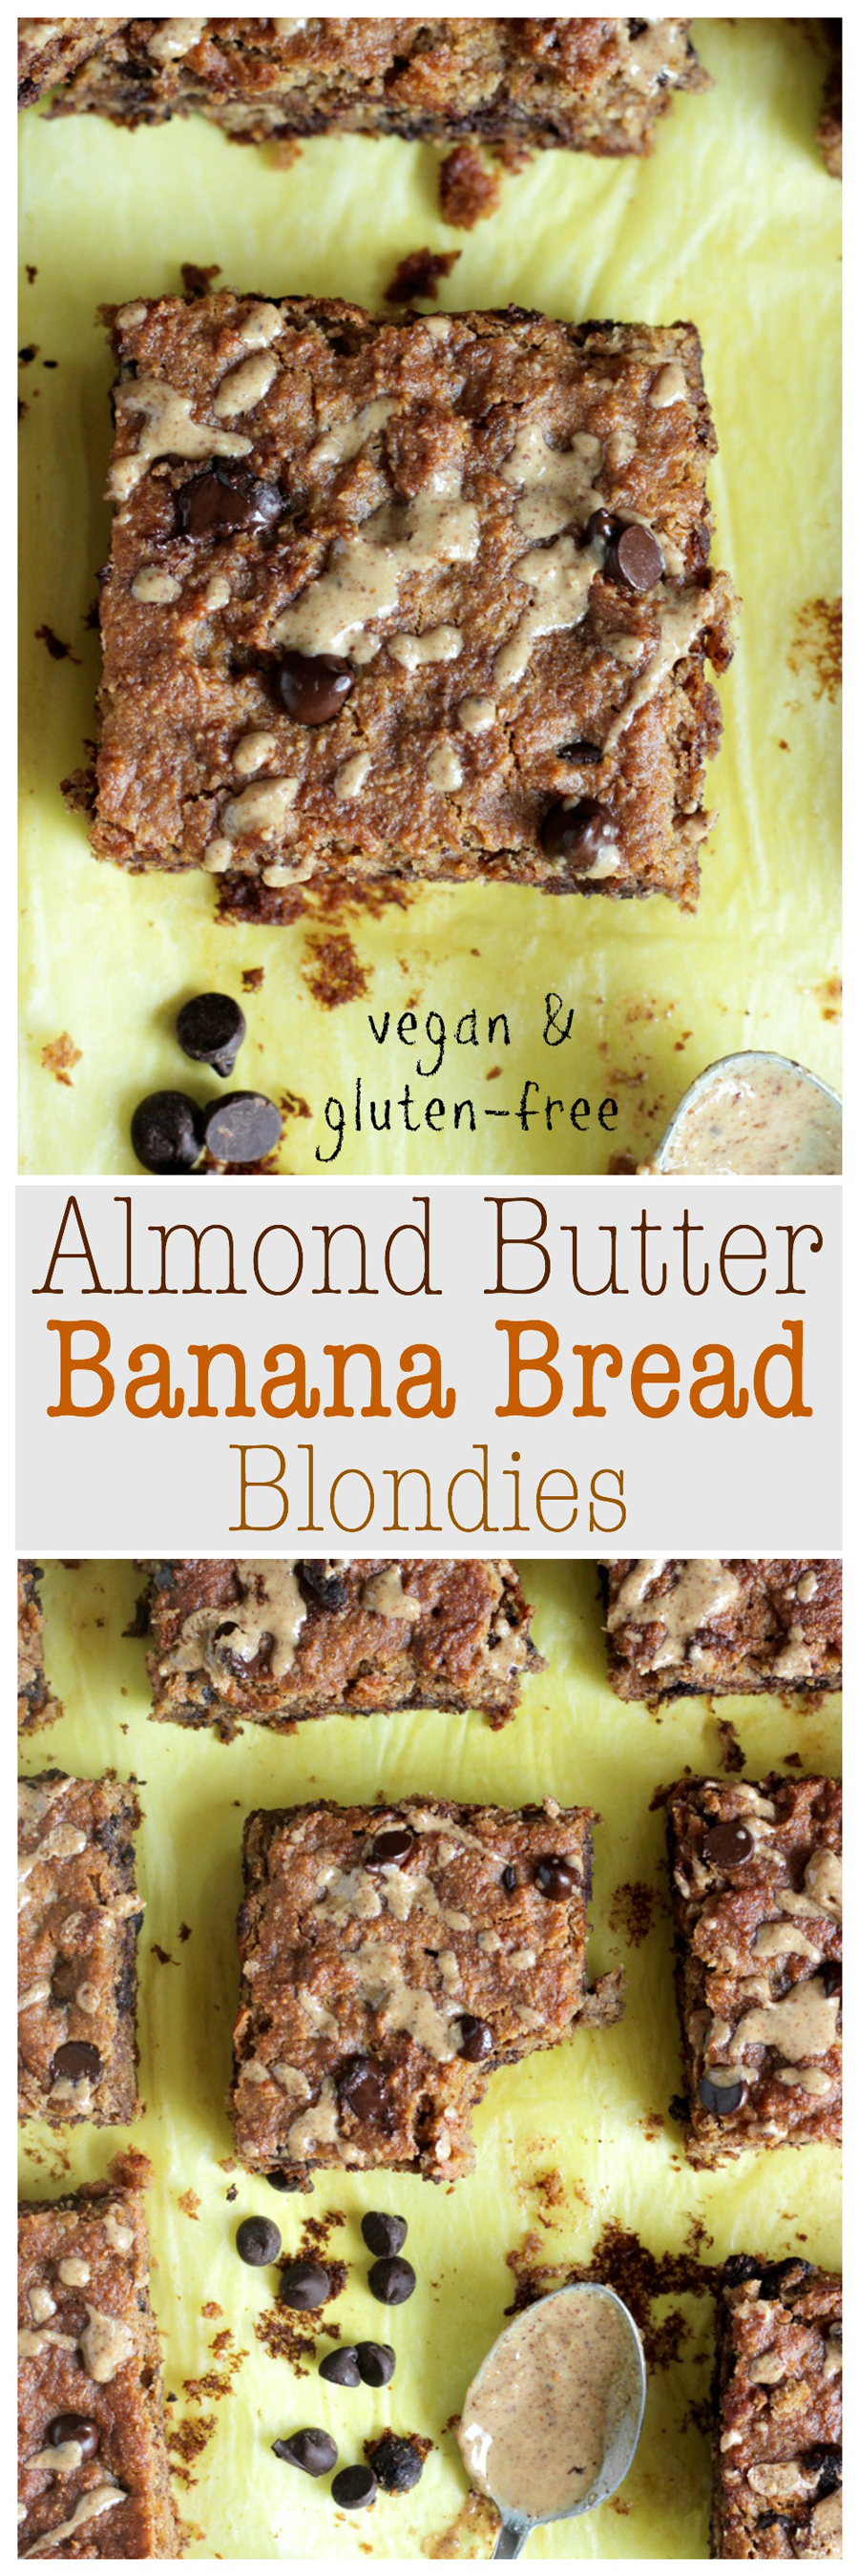 Almond Butter Banana Bread Blondies - These vegan, gluten-free blondies are just in time for summer. They're healthy, full of delicious healthy fats and fiber, oh and most importantly stuffed with creamy almond butter, bananas and chocolate! NeuroticMommy.com #vegan #healthy #snacks